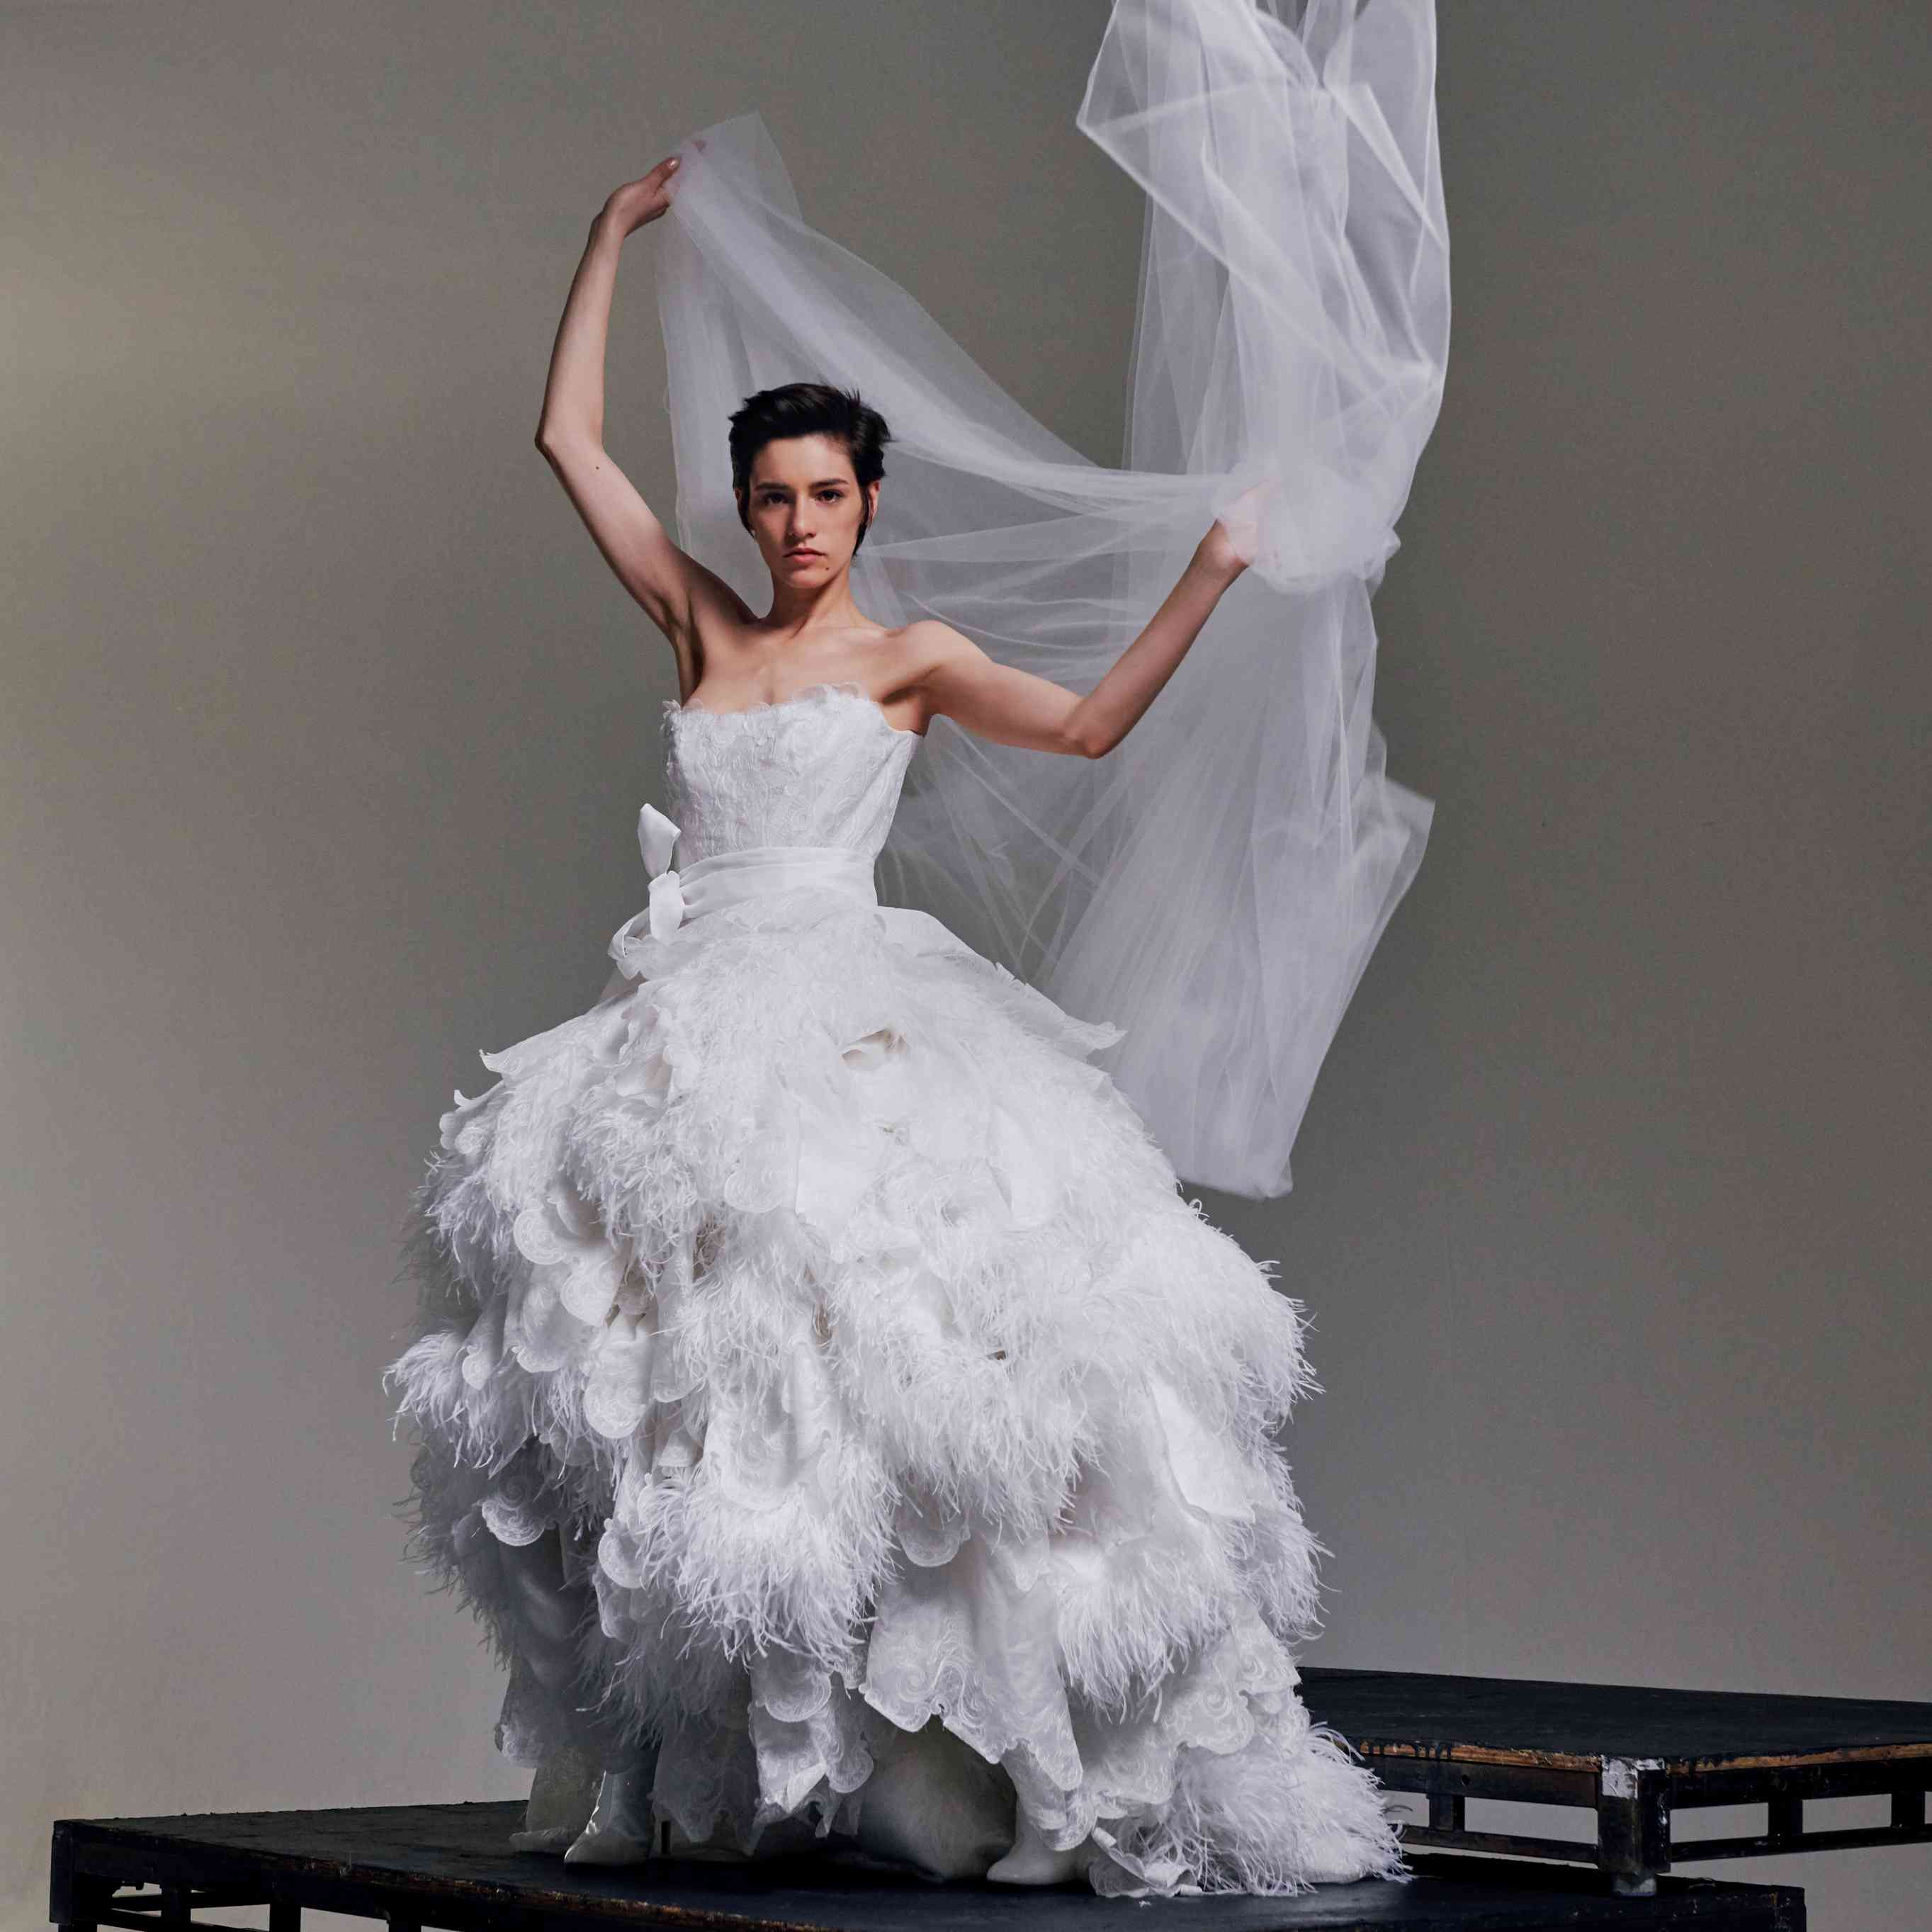 Model in feathered white wedding gown